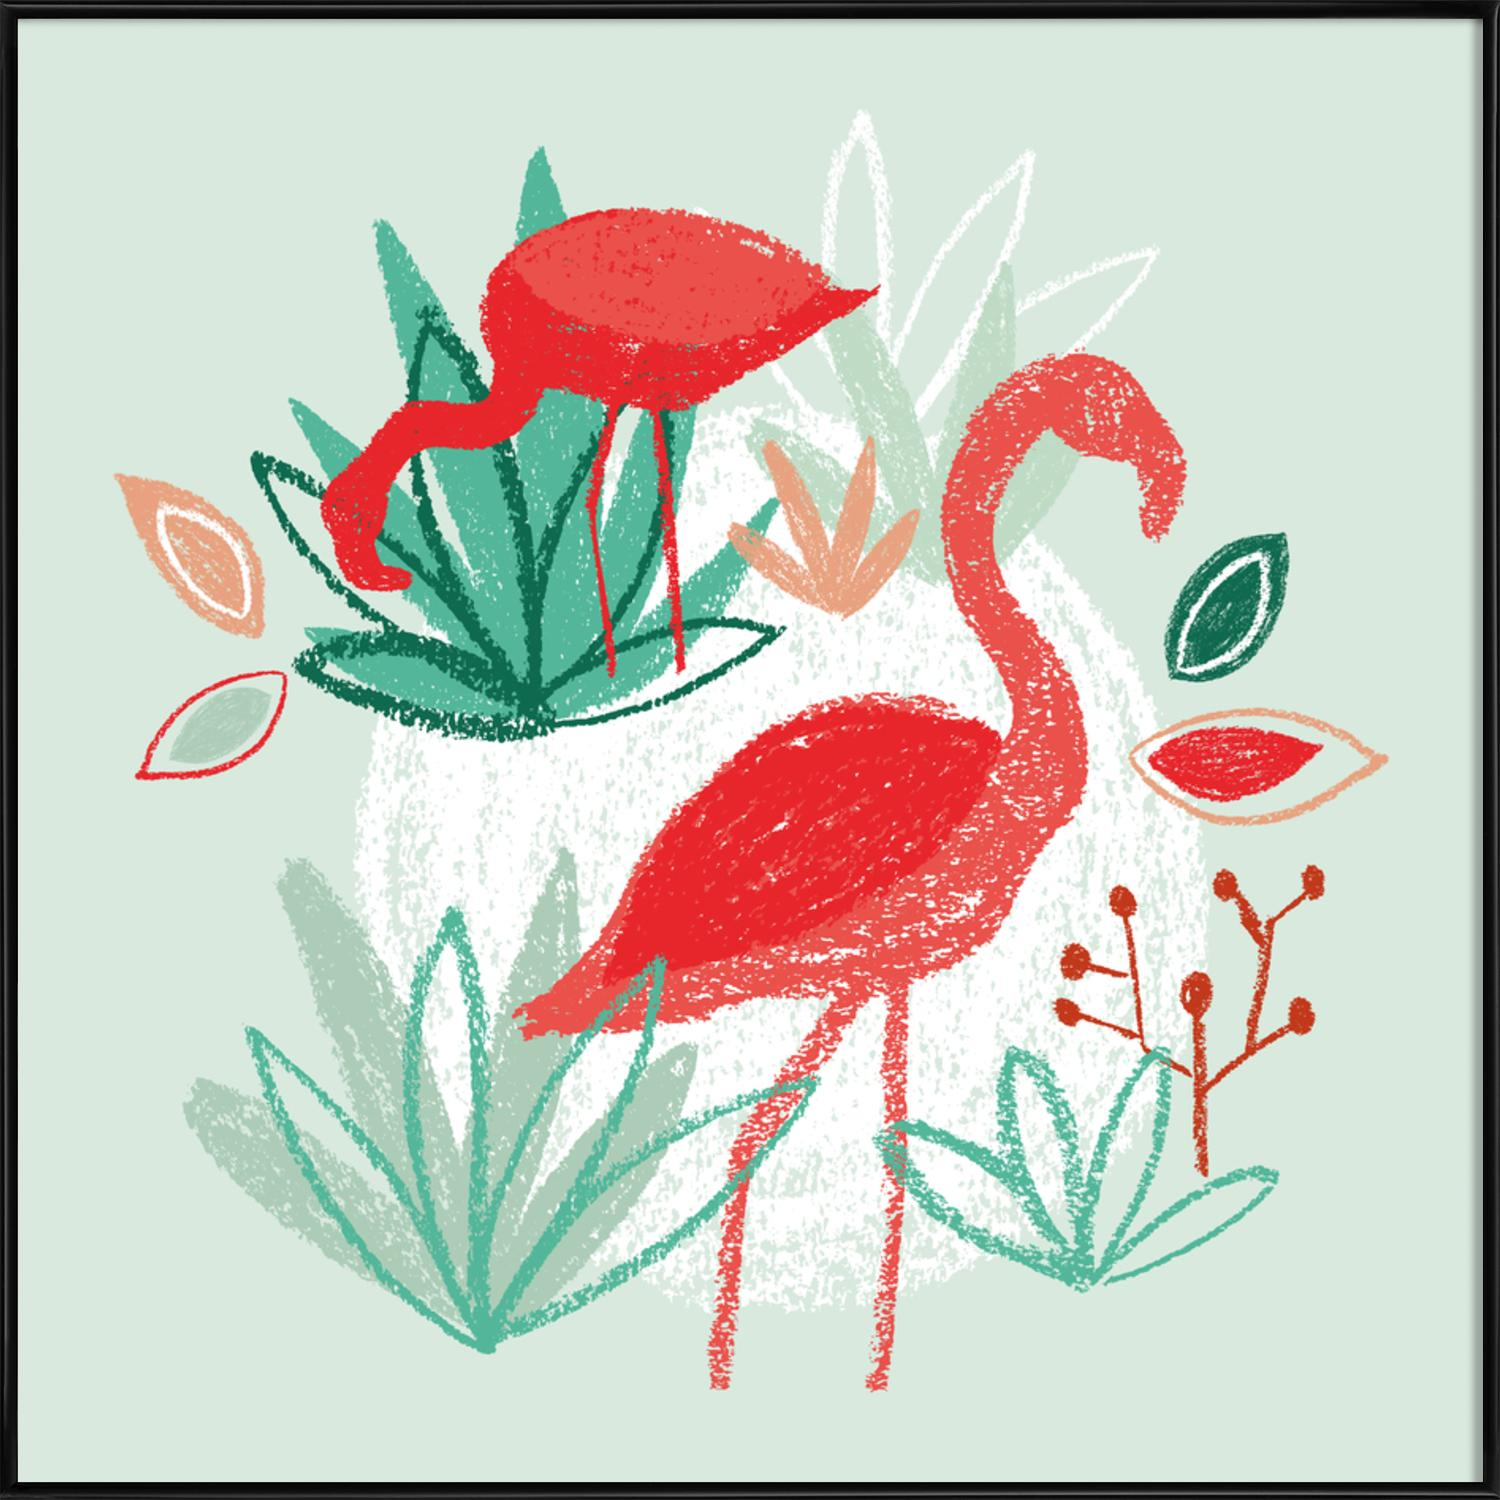 The Two Flamingos as Poster in Standard Frame by BlauMaschine